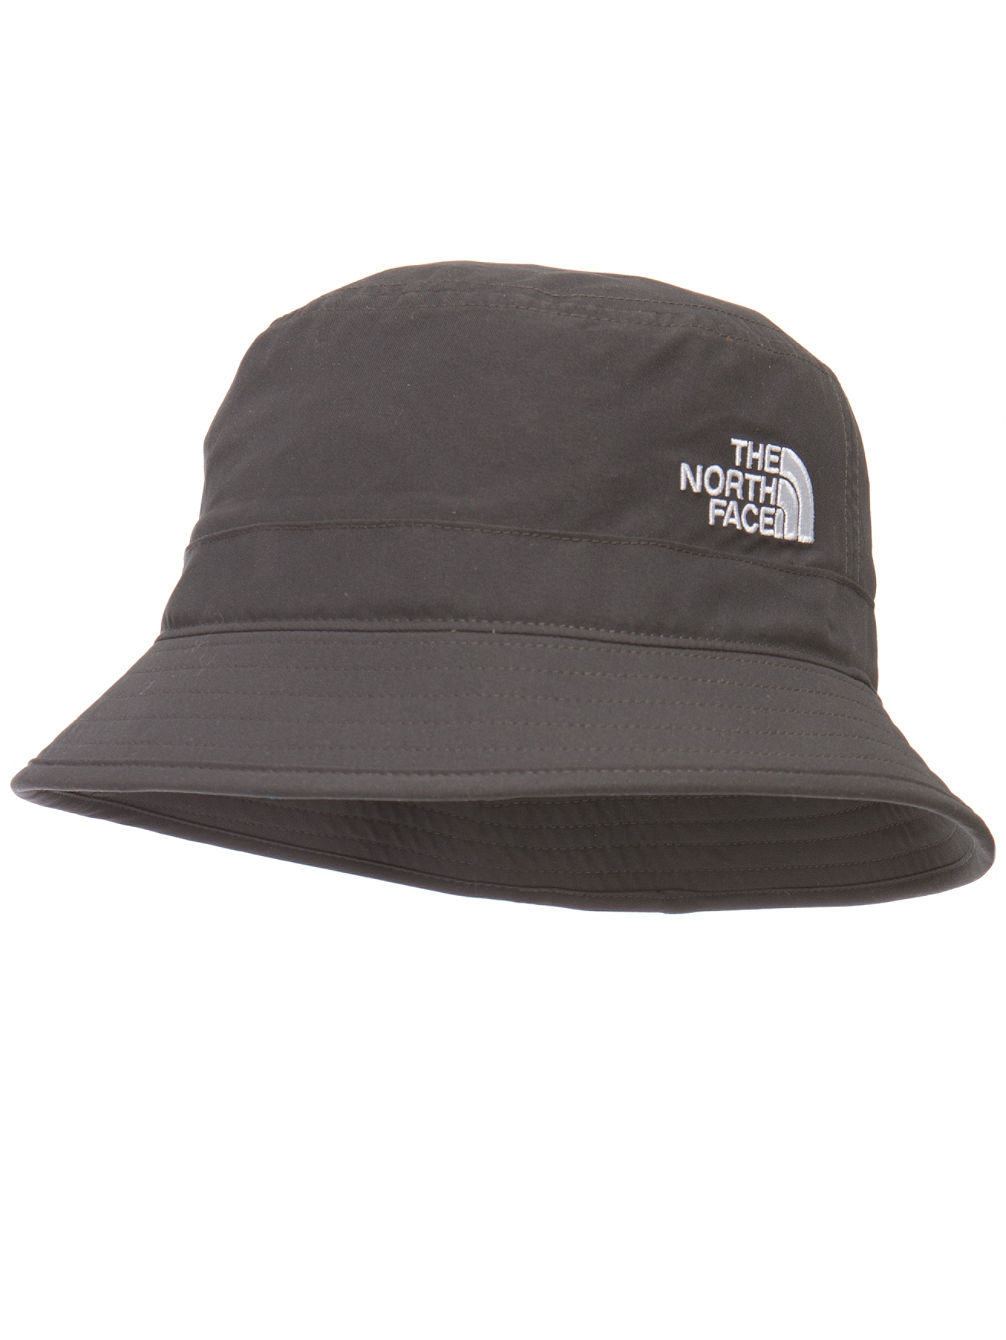 3107a7ff437 Buy THE NORTH FACE Triple Buckets Hat online at blue-tomato.com